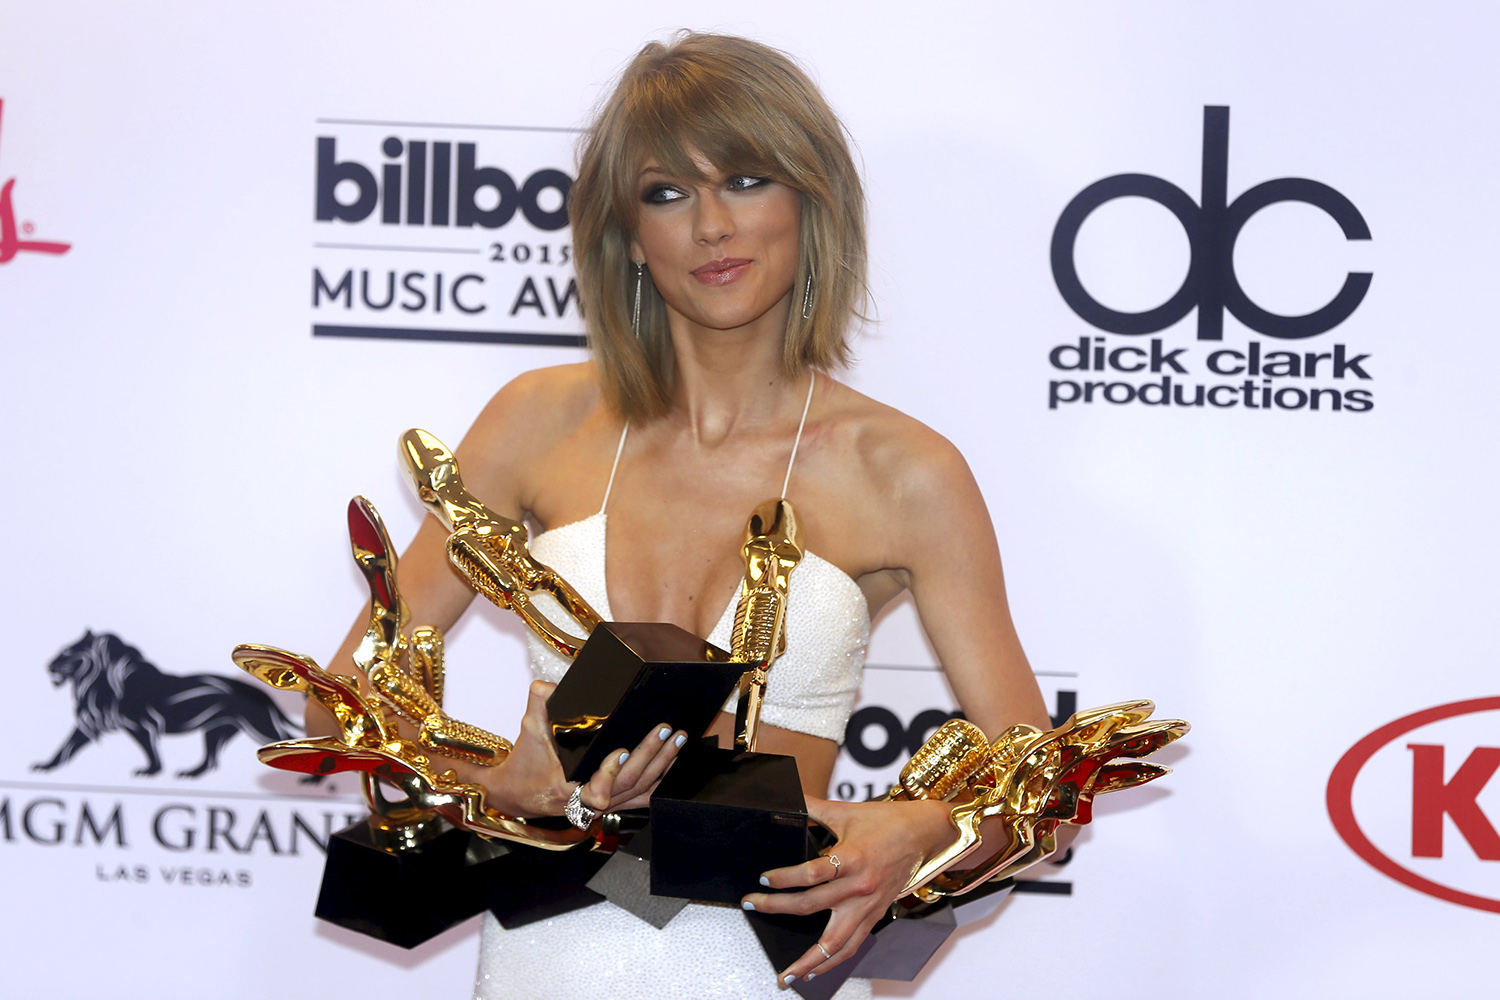 """Singer Taylor Swift poses backstage with her awards for Top Artist, Billboard Chart Achievement Award, Top Female Artist, Top Hot 100 Artist, Top Digital Songs Artist, Top Streaming Song (Video) for """"Shake it Off"""" and Top Billboard 200 Album for """"1989"""" at the 2015 Billboard Music Awards in Las Vegas, Nevada May 17, 2015. REUTERS/L.E. Baskow"""